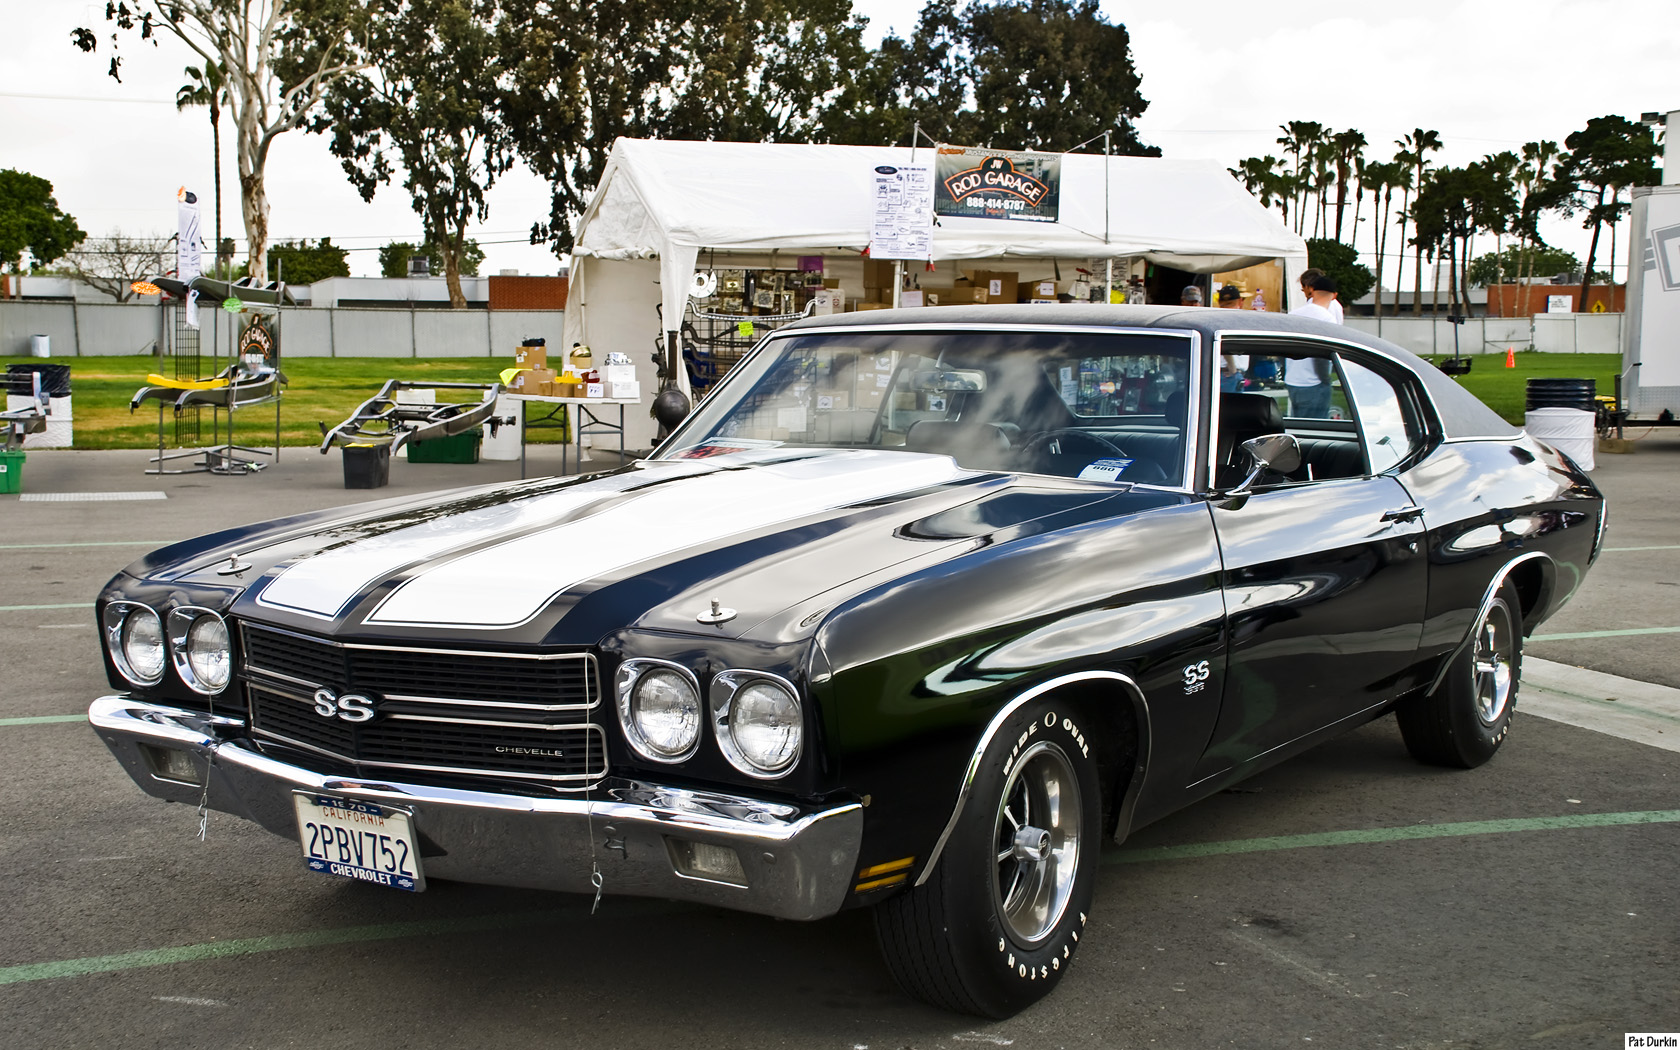 Ultimate Muscle Car History Of Chevy Chevelle SS! Powerhouse That ...